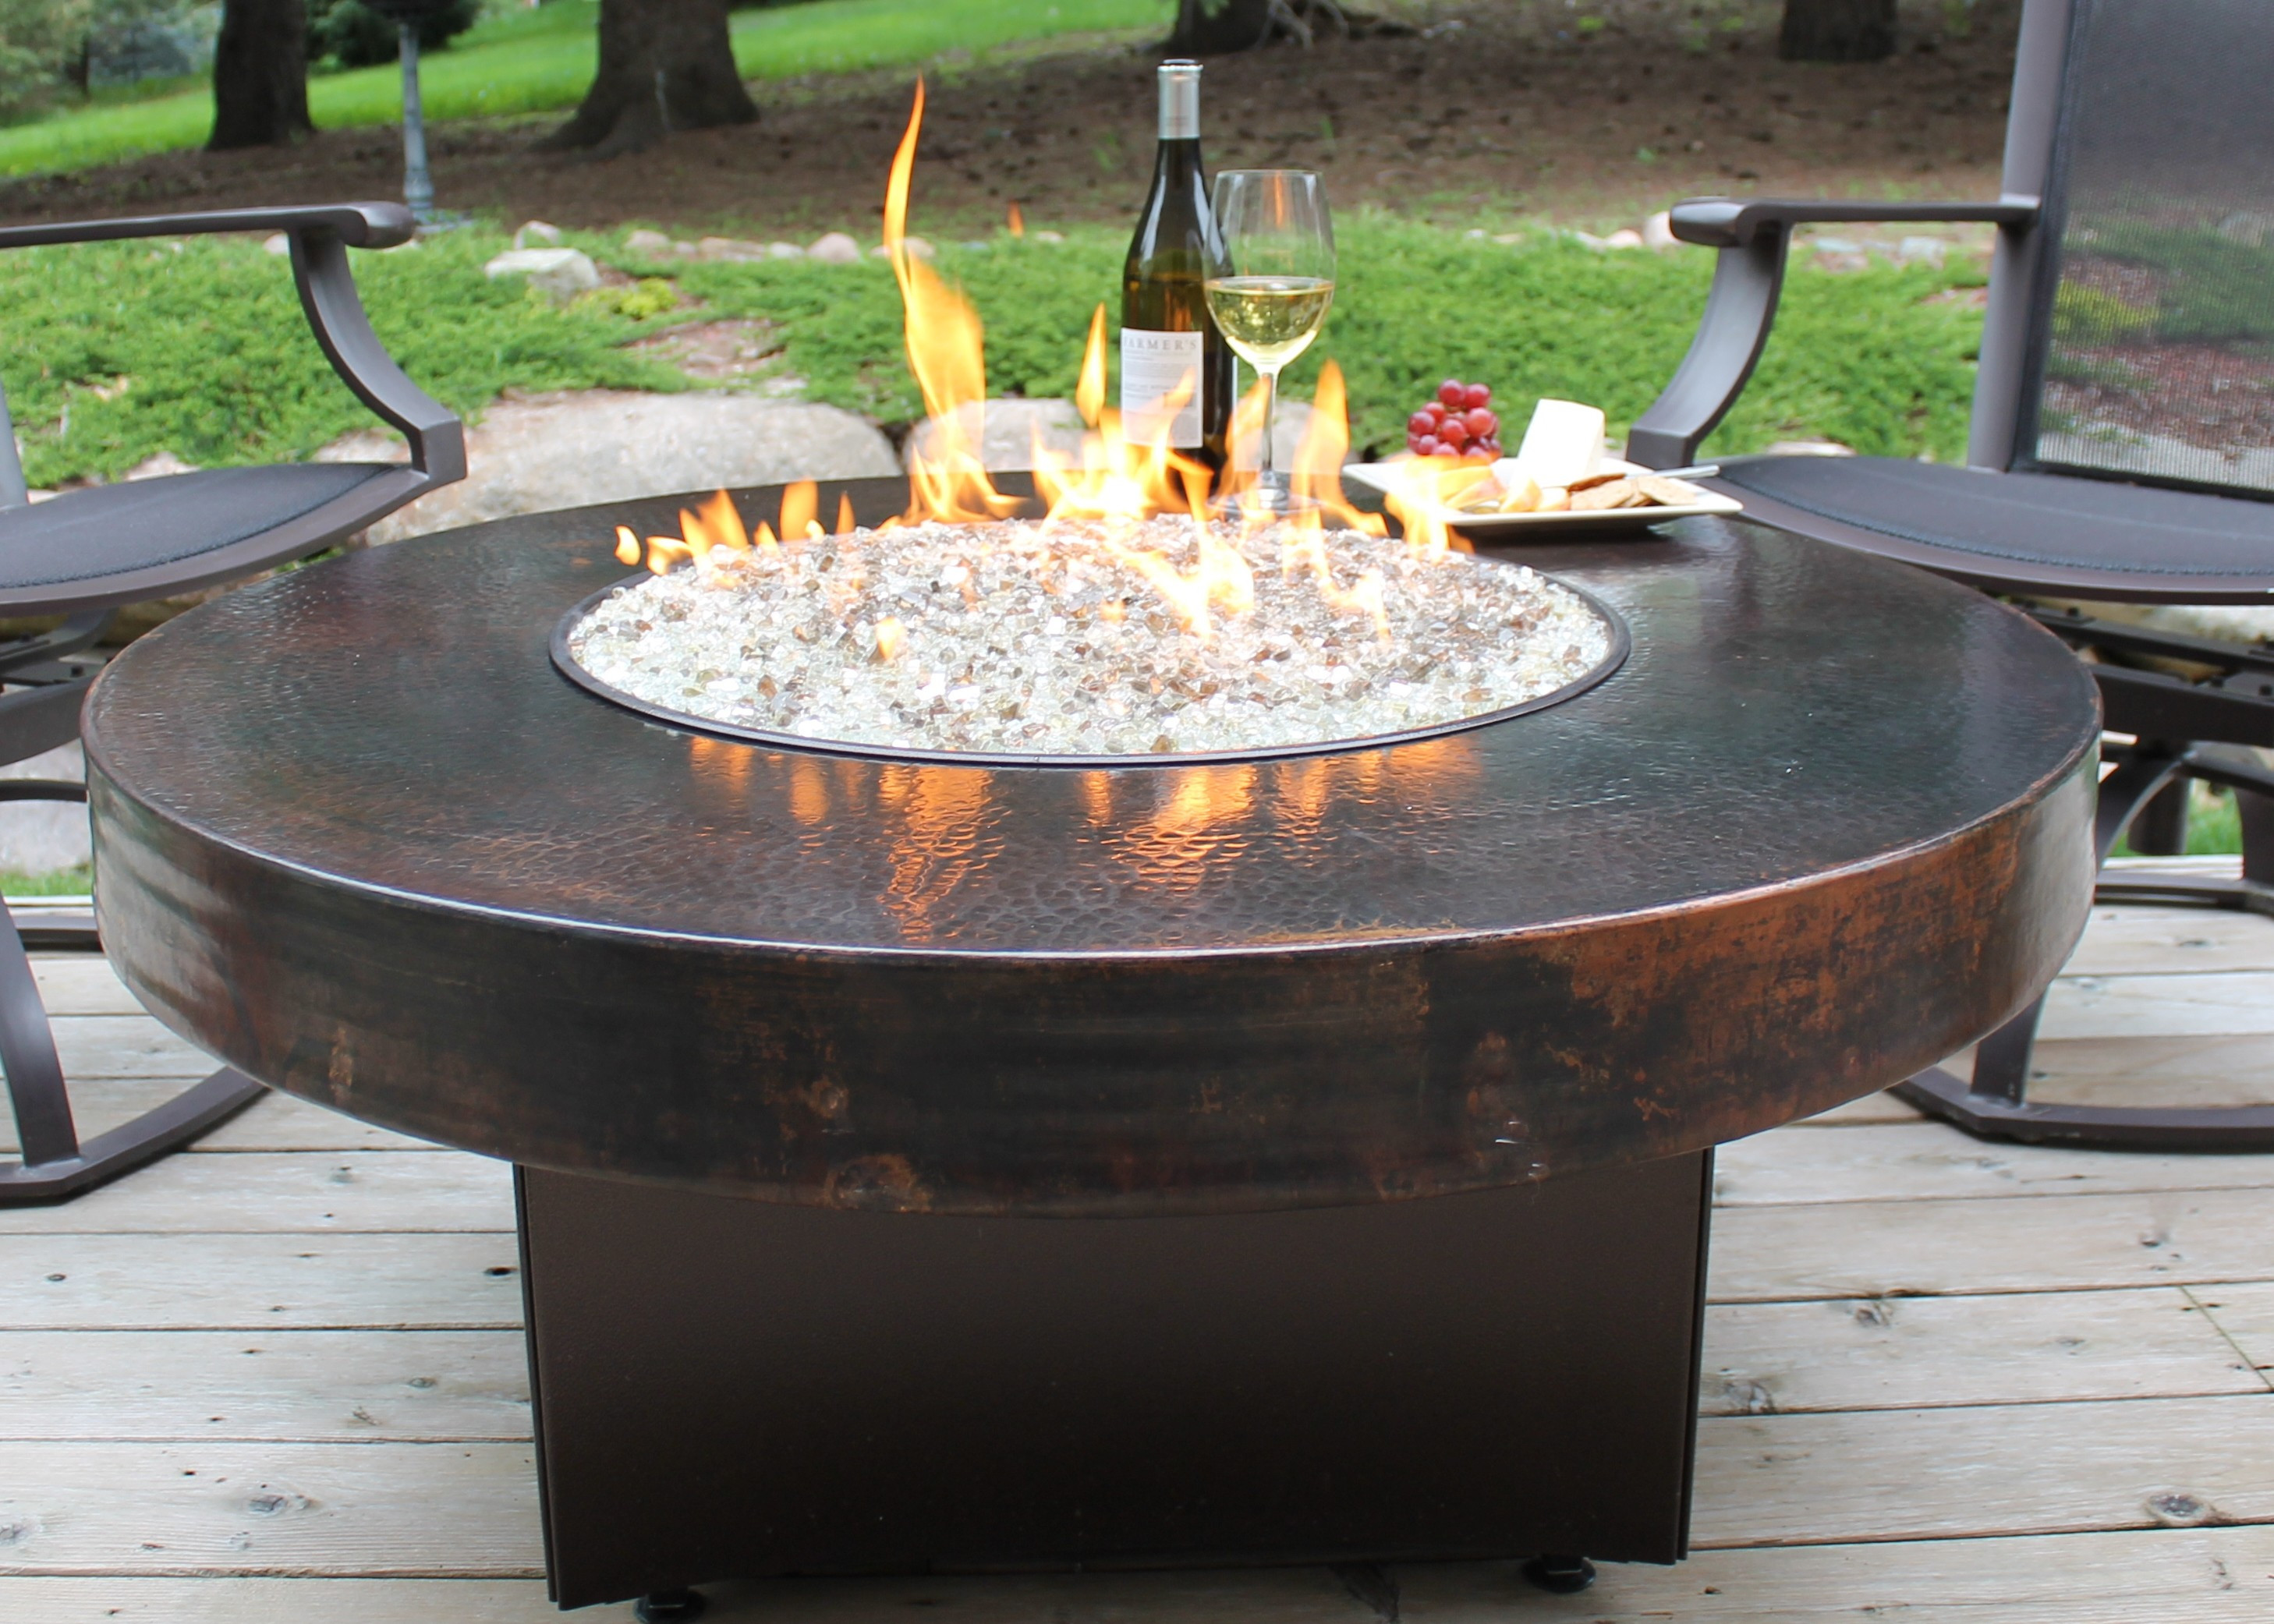 Best ideas about Table Top Fire Pit . Save or Pin Ambient Design Ideas for Table Top Fire Pits Now.